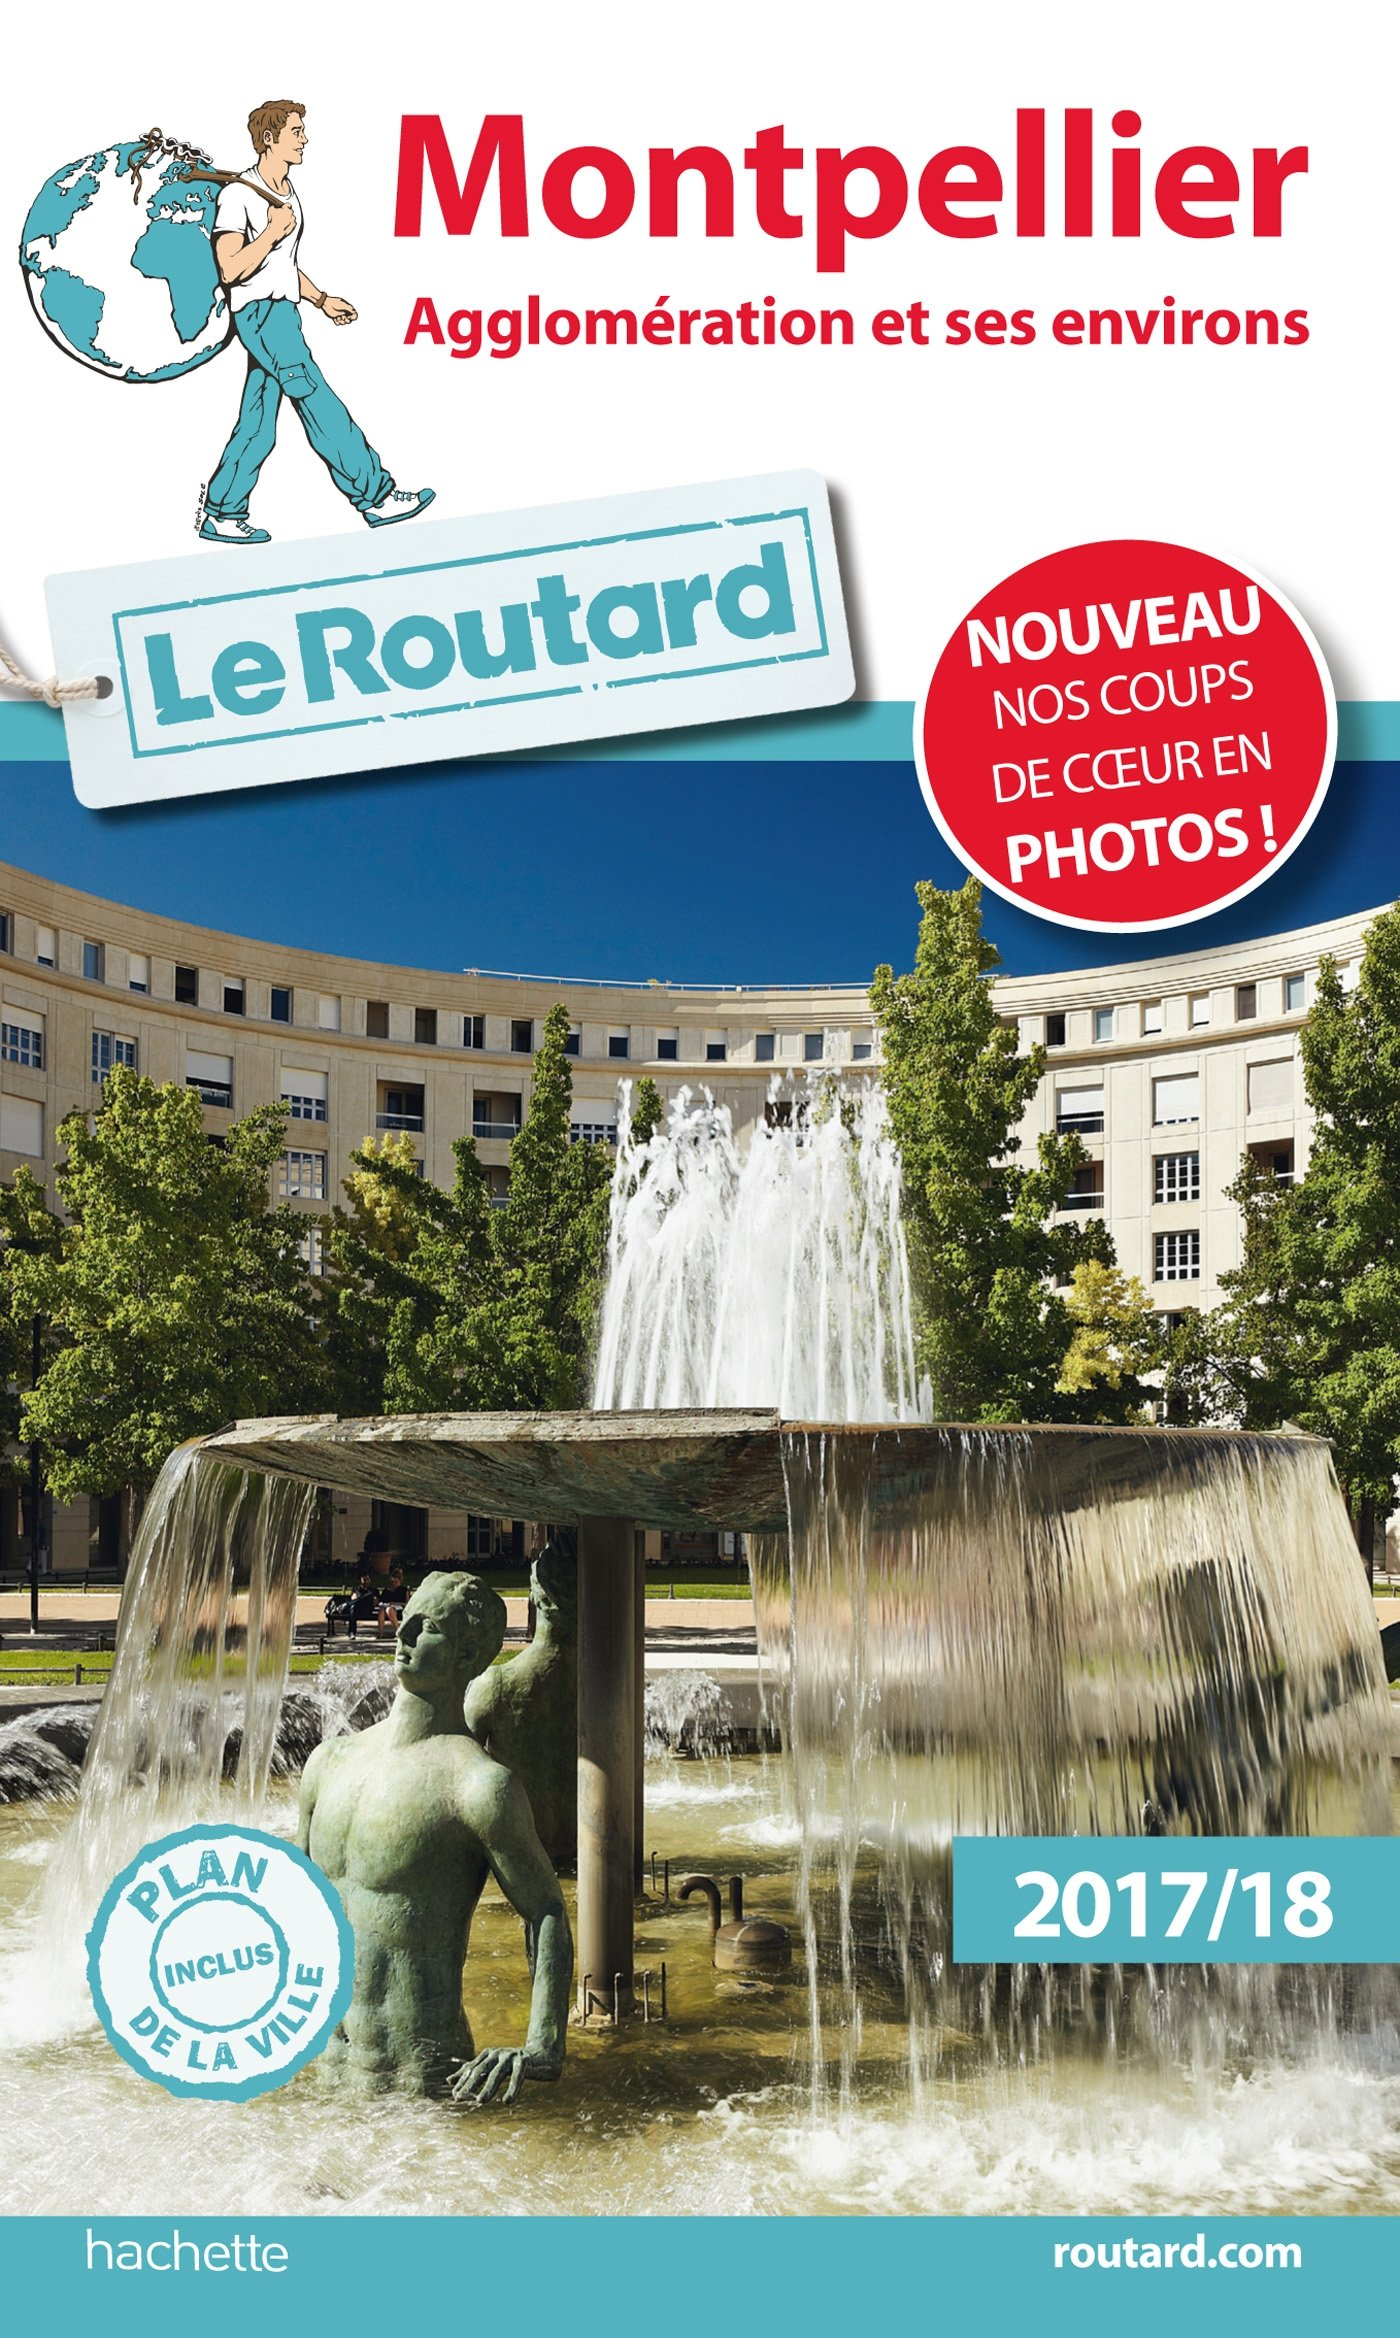 Guide du Routard Montpellier 2017/18: Agglomérati...